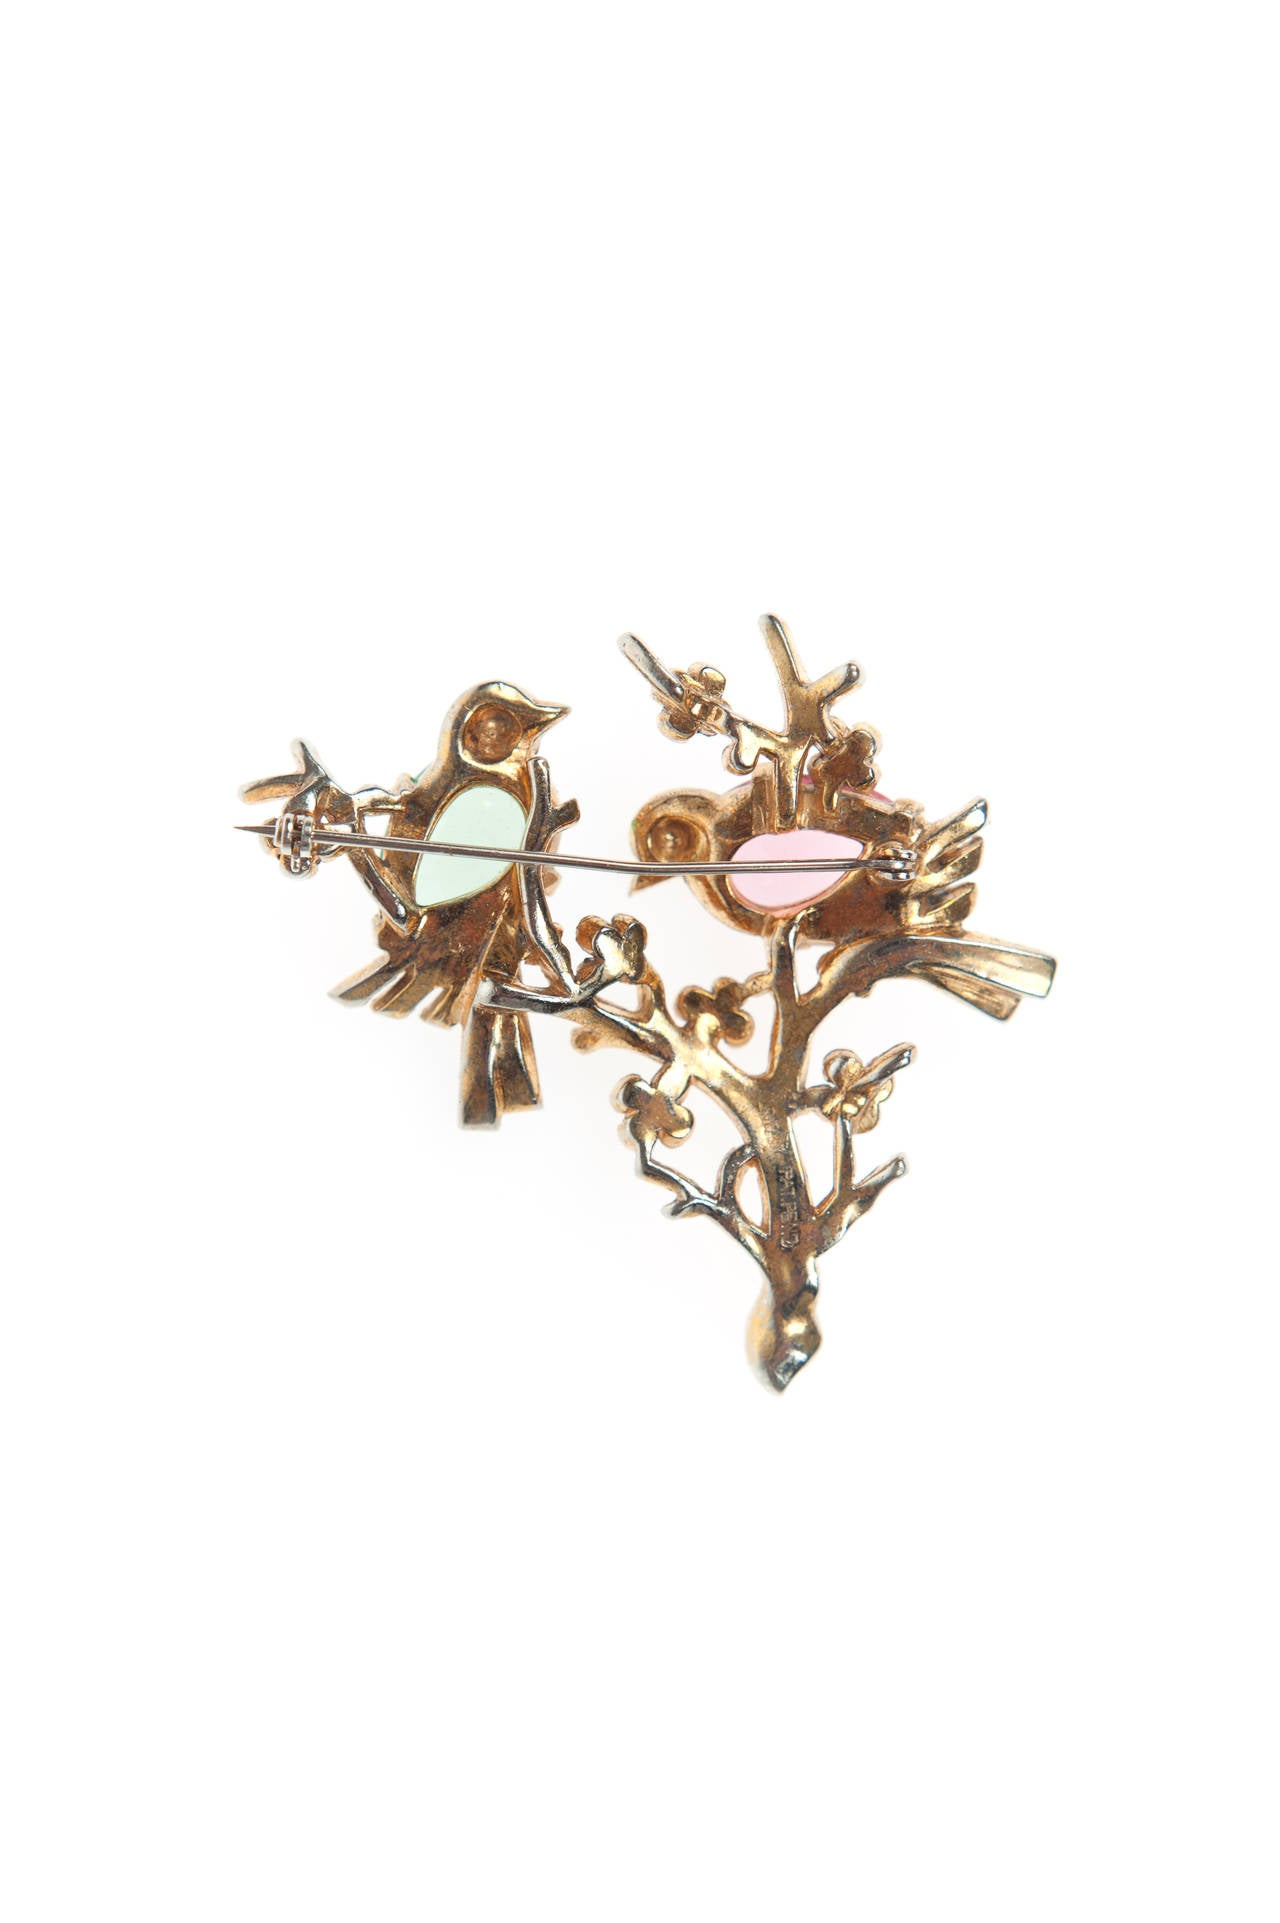 2 doves vintage brooches silhouette